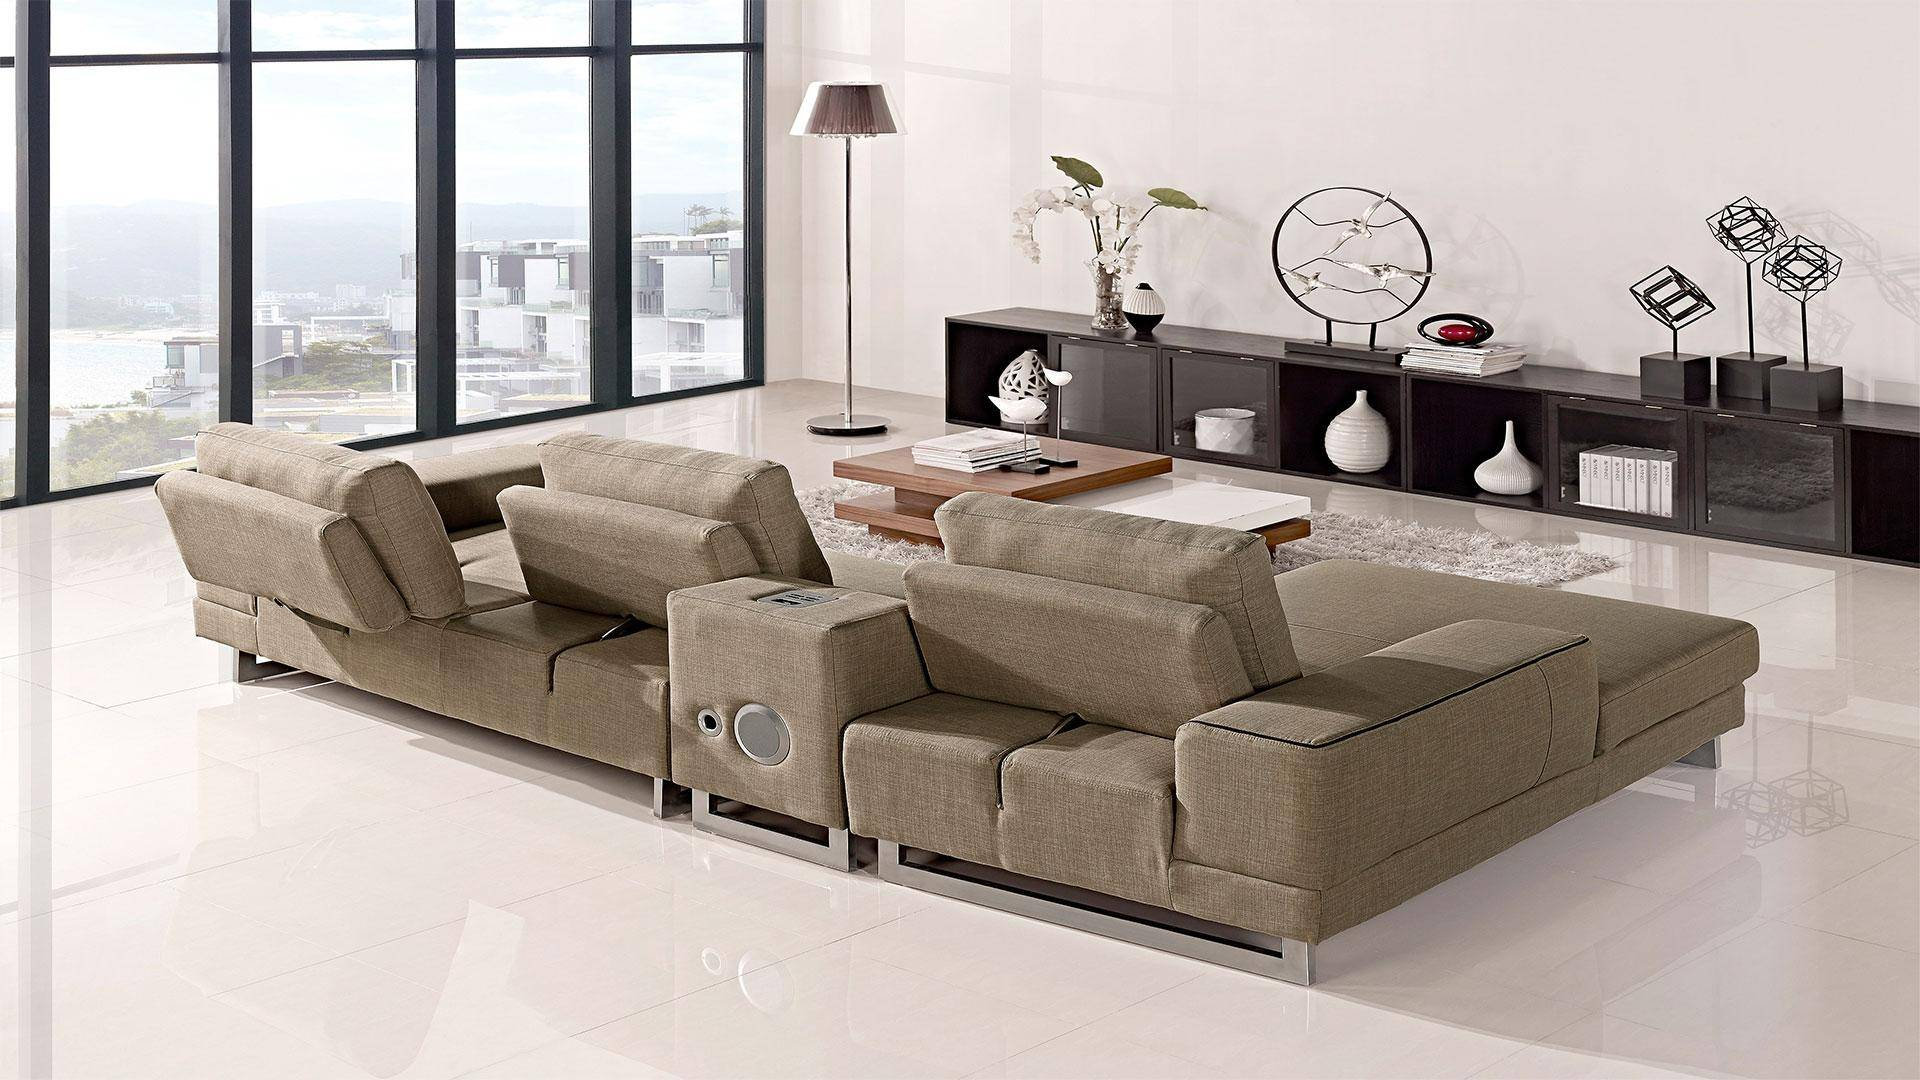 Stupendous At Home Usa Adele Ultra Modern Beige Fabric Sectional Sofa Ncnpc Chair Design For Home Ncnpcorg